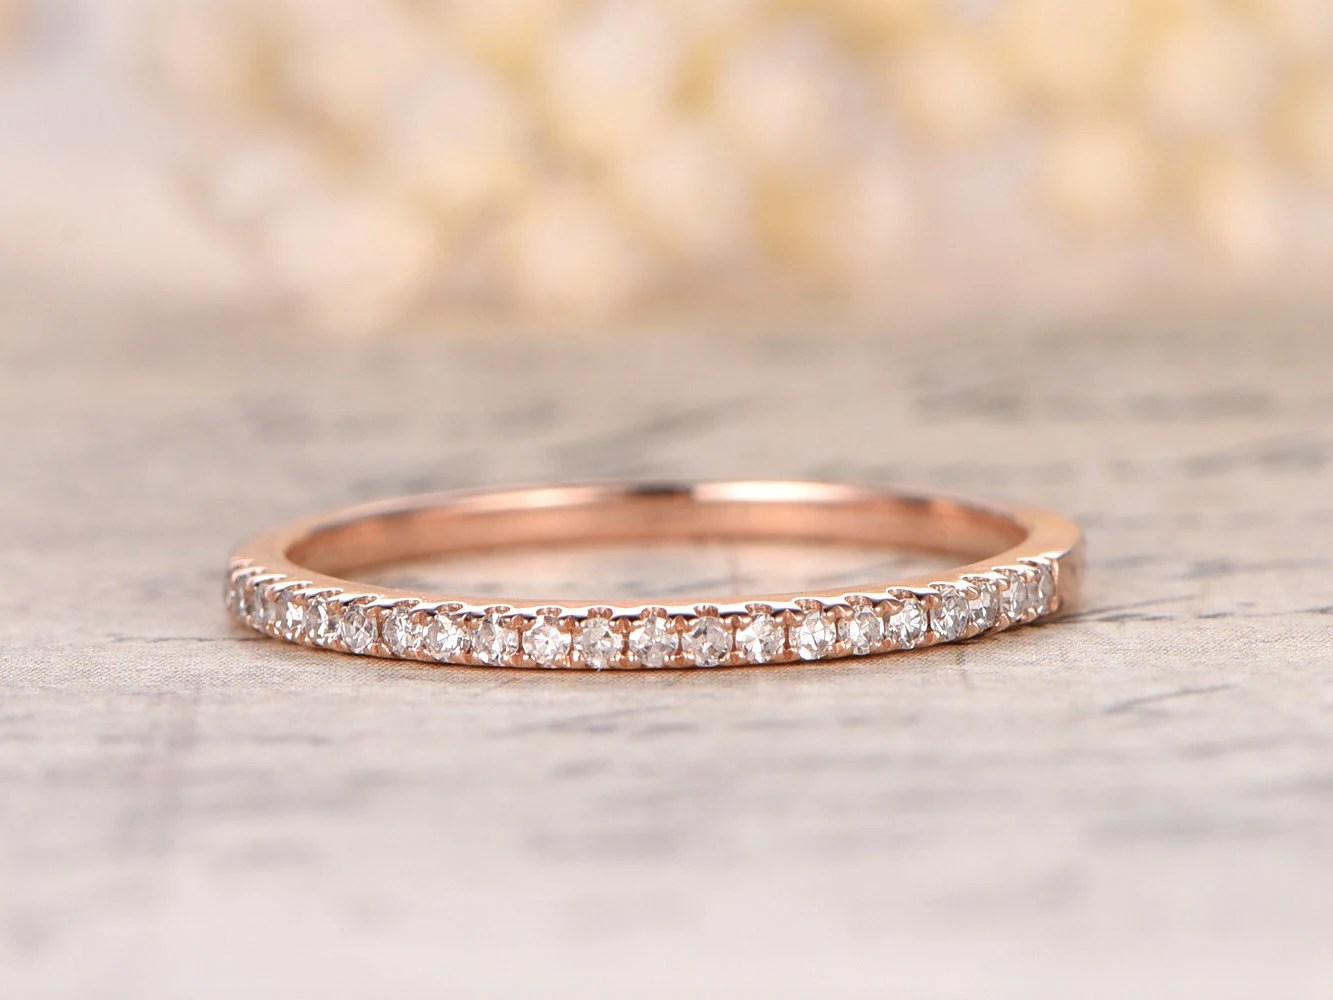 eternity bands etsy wedding bands Valentine s day present 14K Rose Gold Wedding Band Half Eternity Ring Engagement Ring Stackable Ring Micro Pave Diamond Ring Eternity Bands